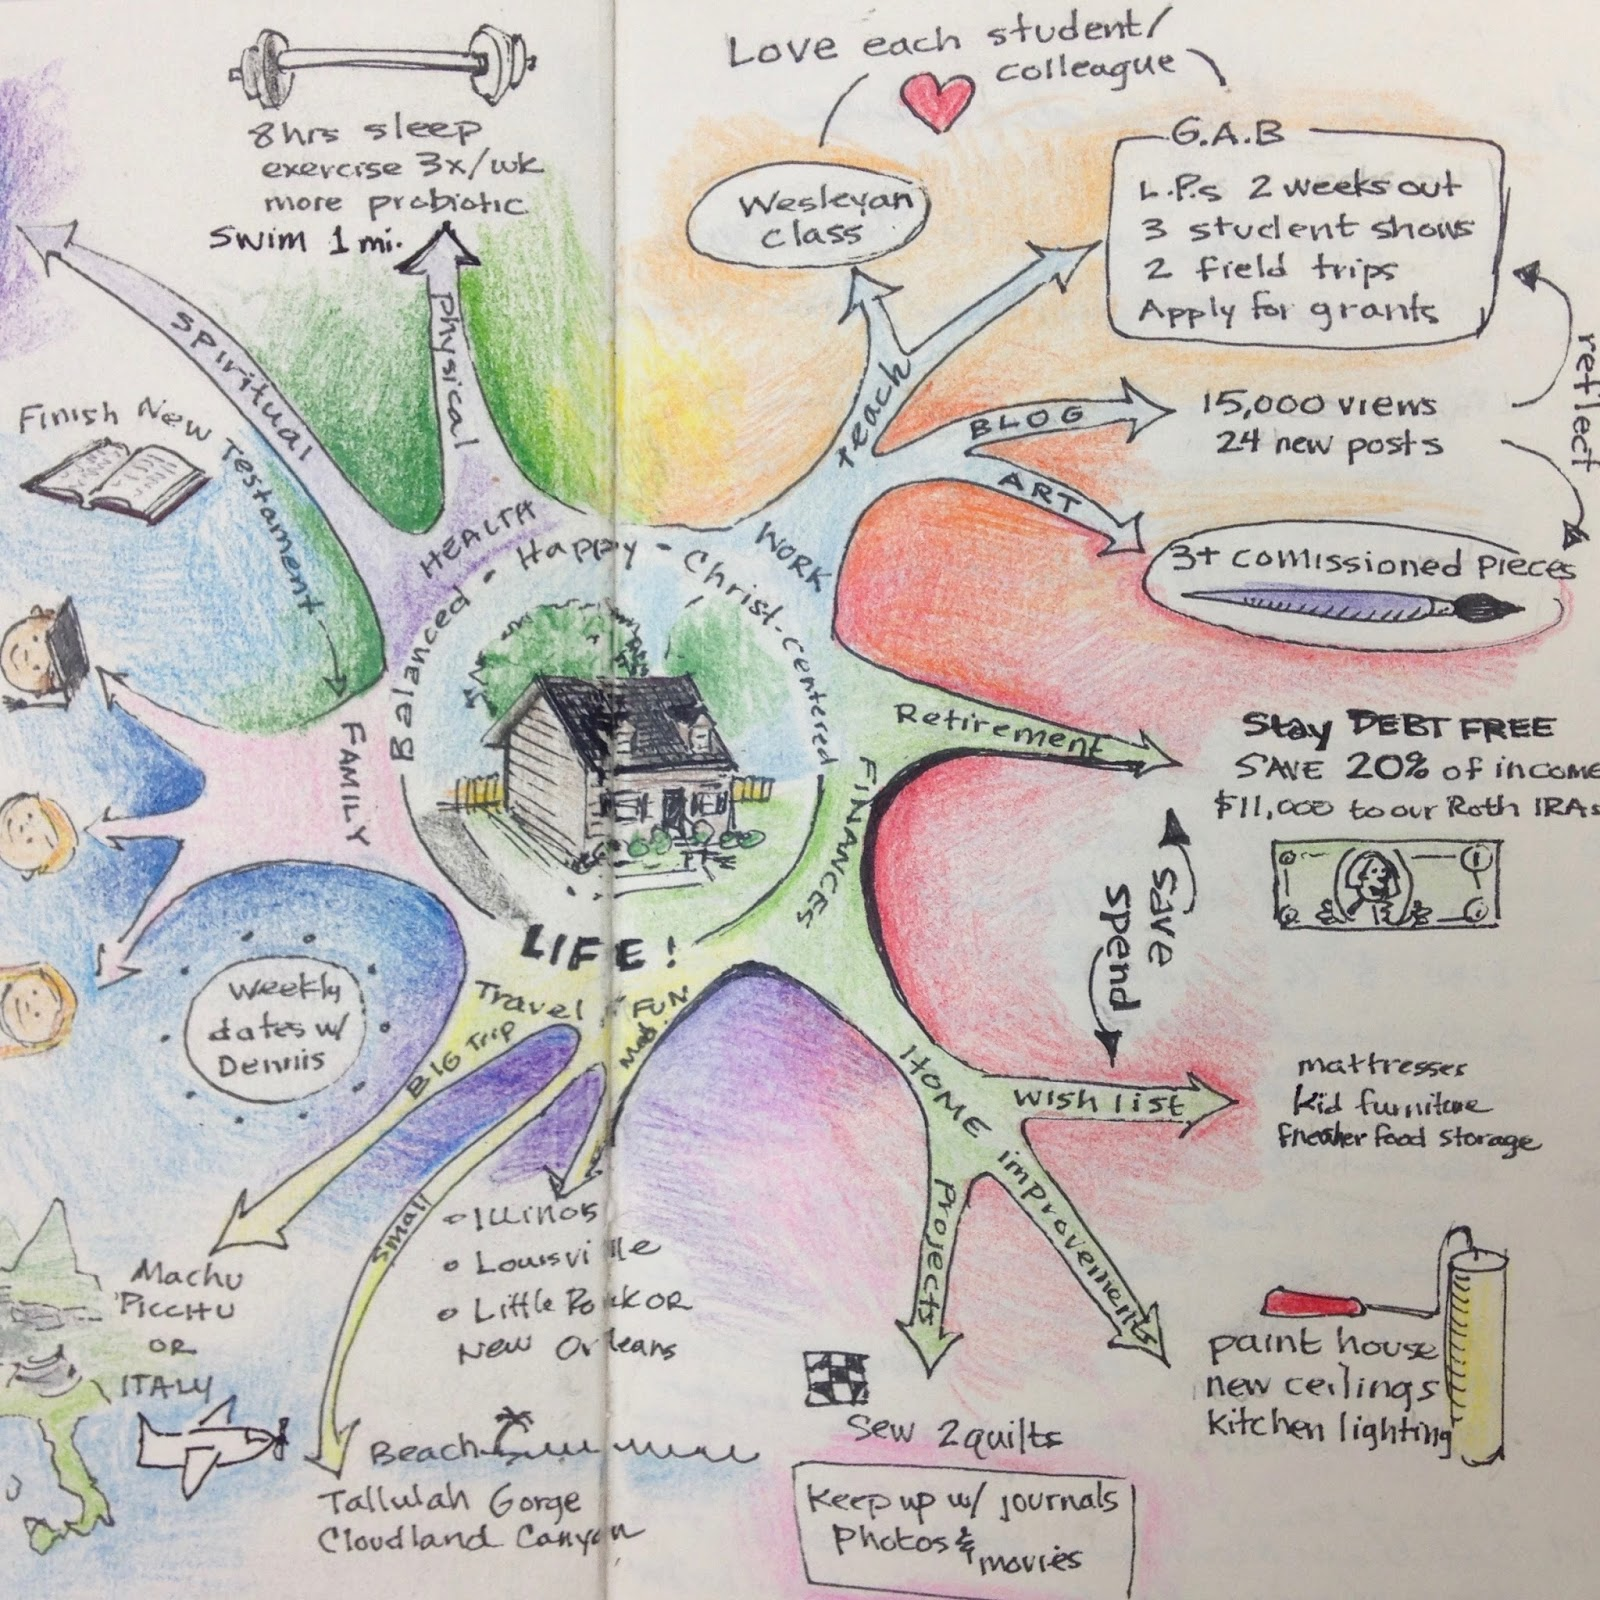 Kristen Applebee Mind Mapping A Vision For A New Year